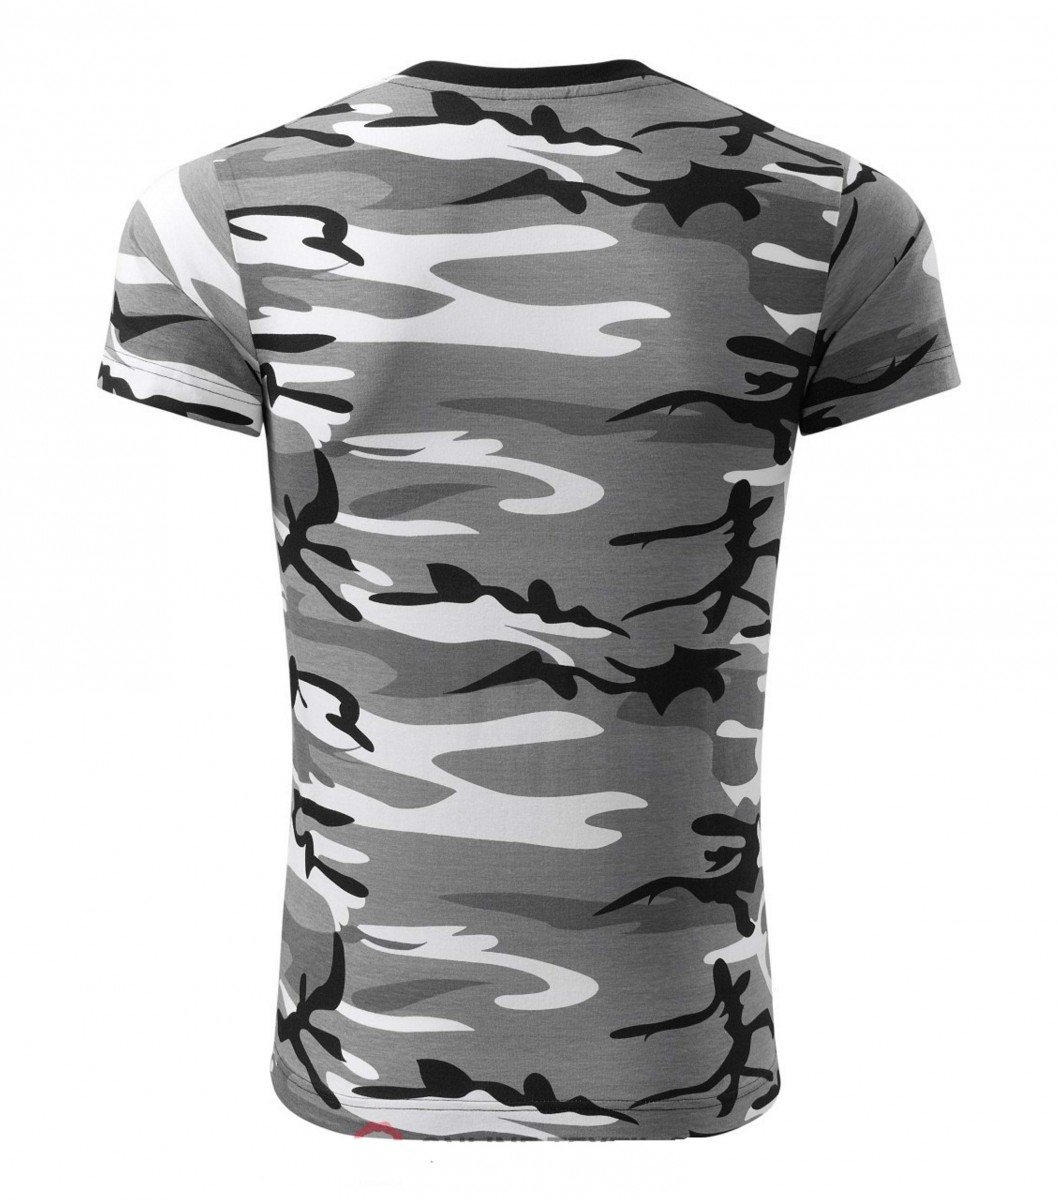 Trička pro páry King and Queen 065 Camouflage Gray. ZOBRAZIT DETAIL ·  ZOBRAZIT DETAIL · ZOBRAZIT DETAIL 2e4ce5a831